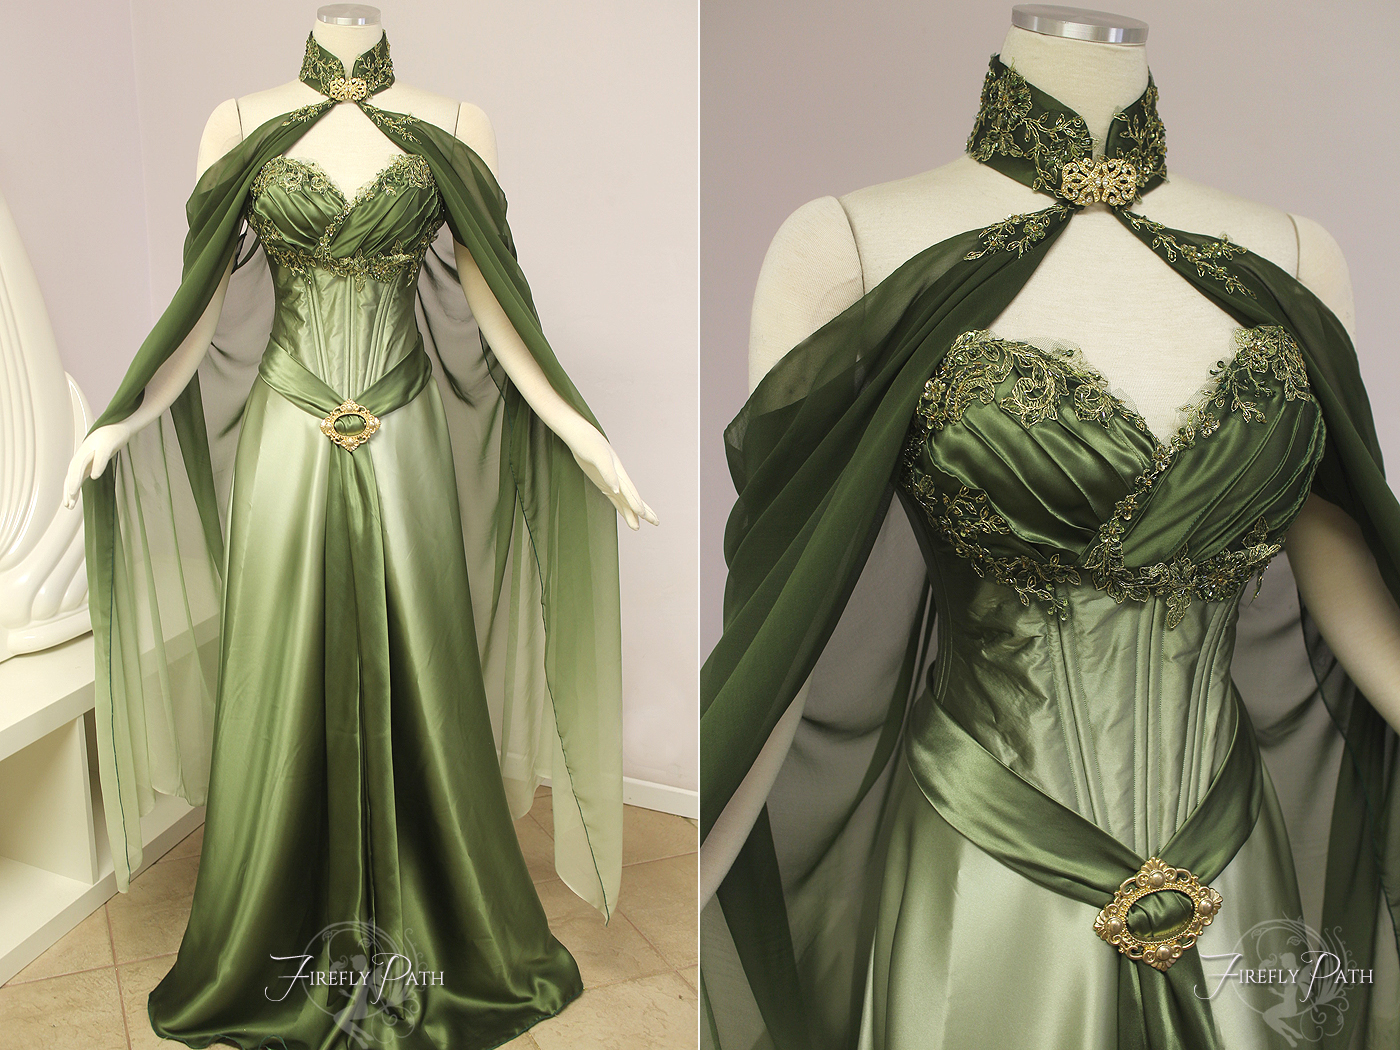 Elven bridal gown by firefly path on deviantart for Elven inspired wedding dresses